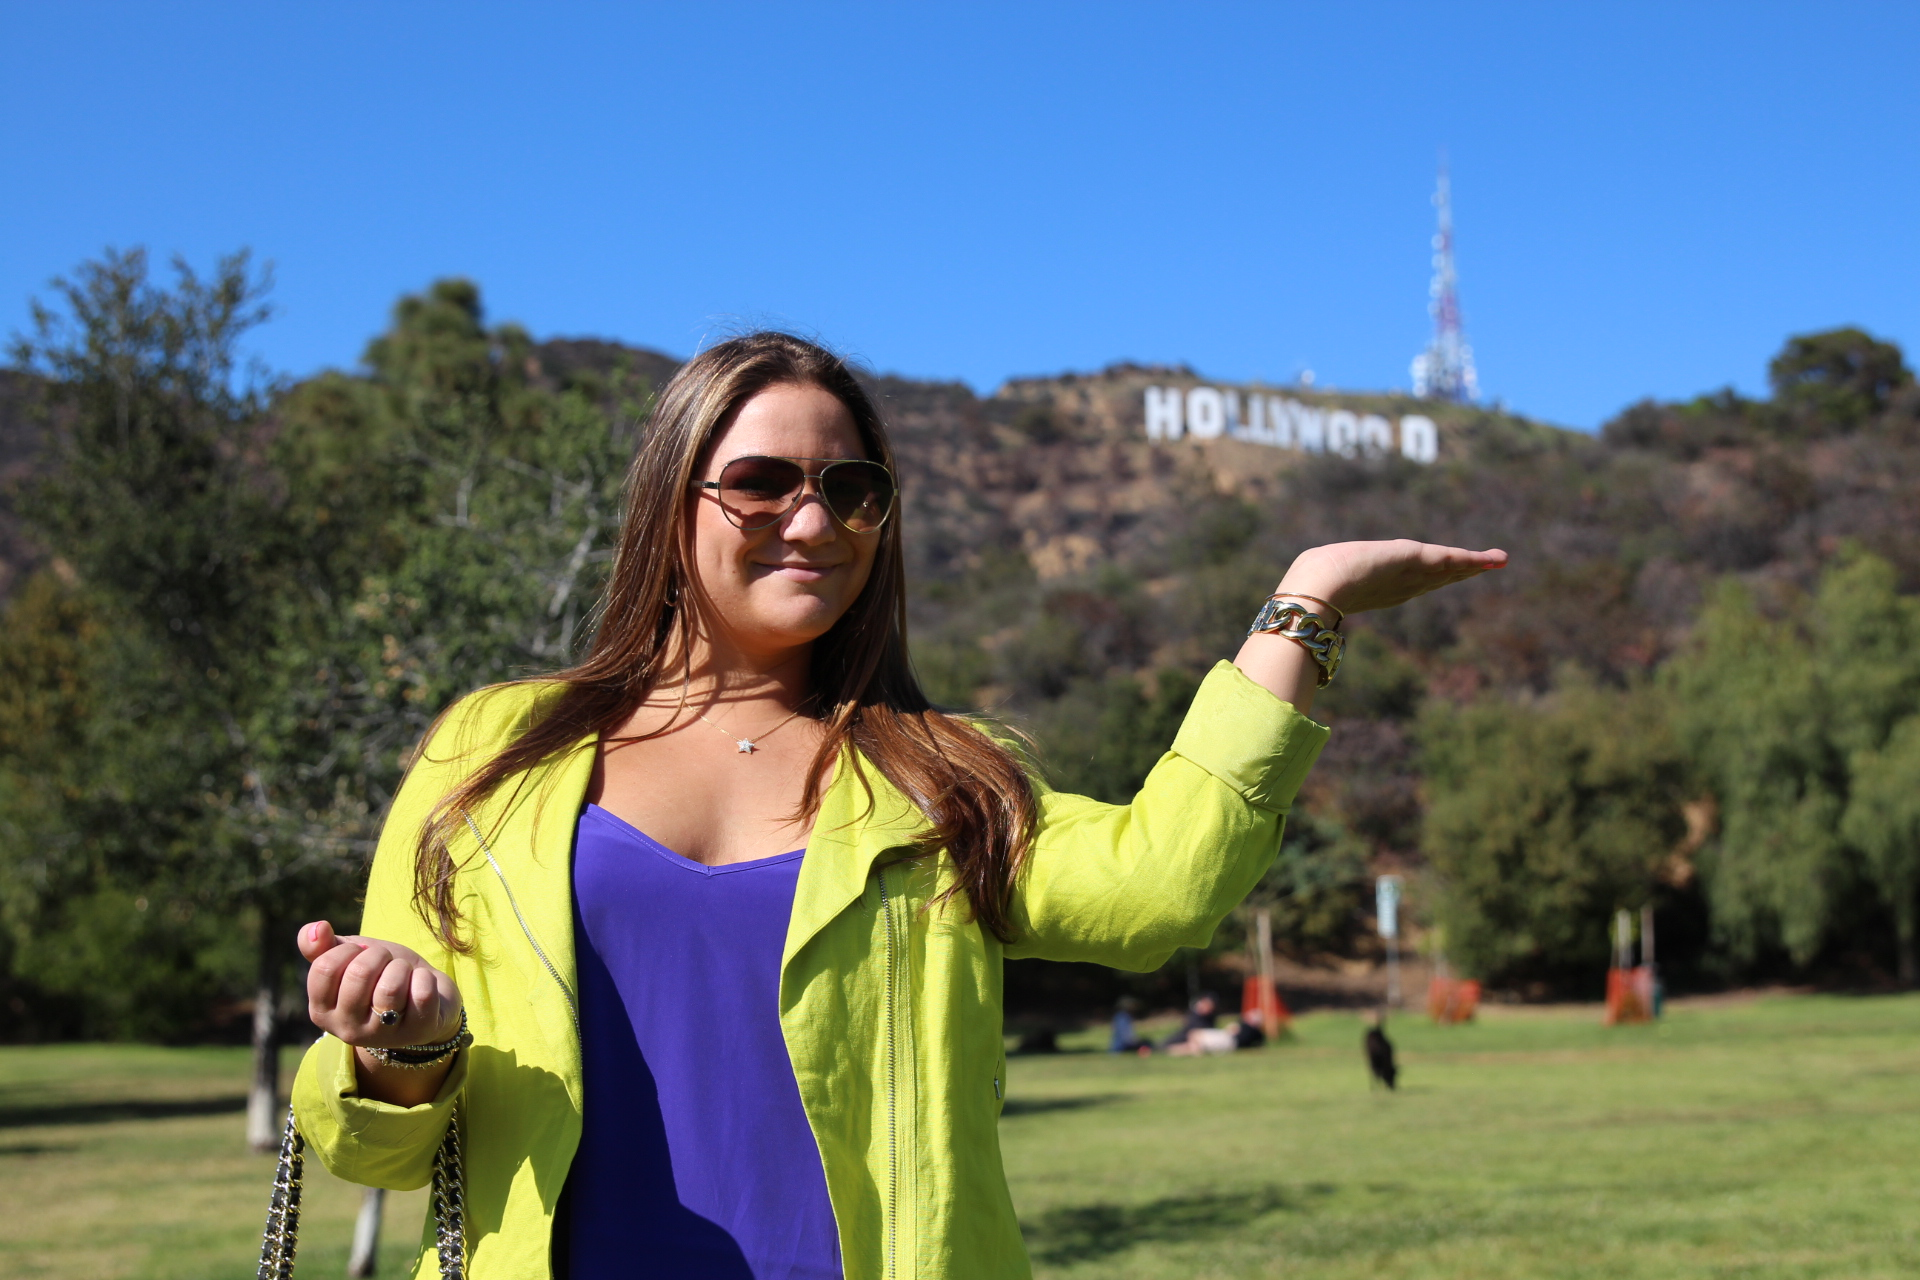 Karen Kane Neon Moto Jacket Hollywood Sign MissyOnMadison Blog Blogger Style Fashion